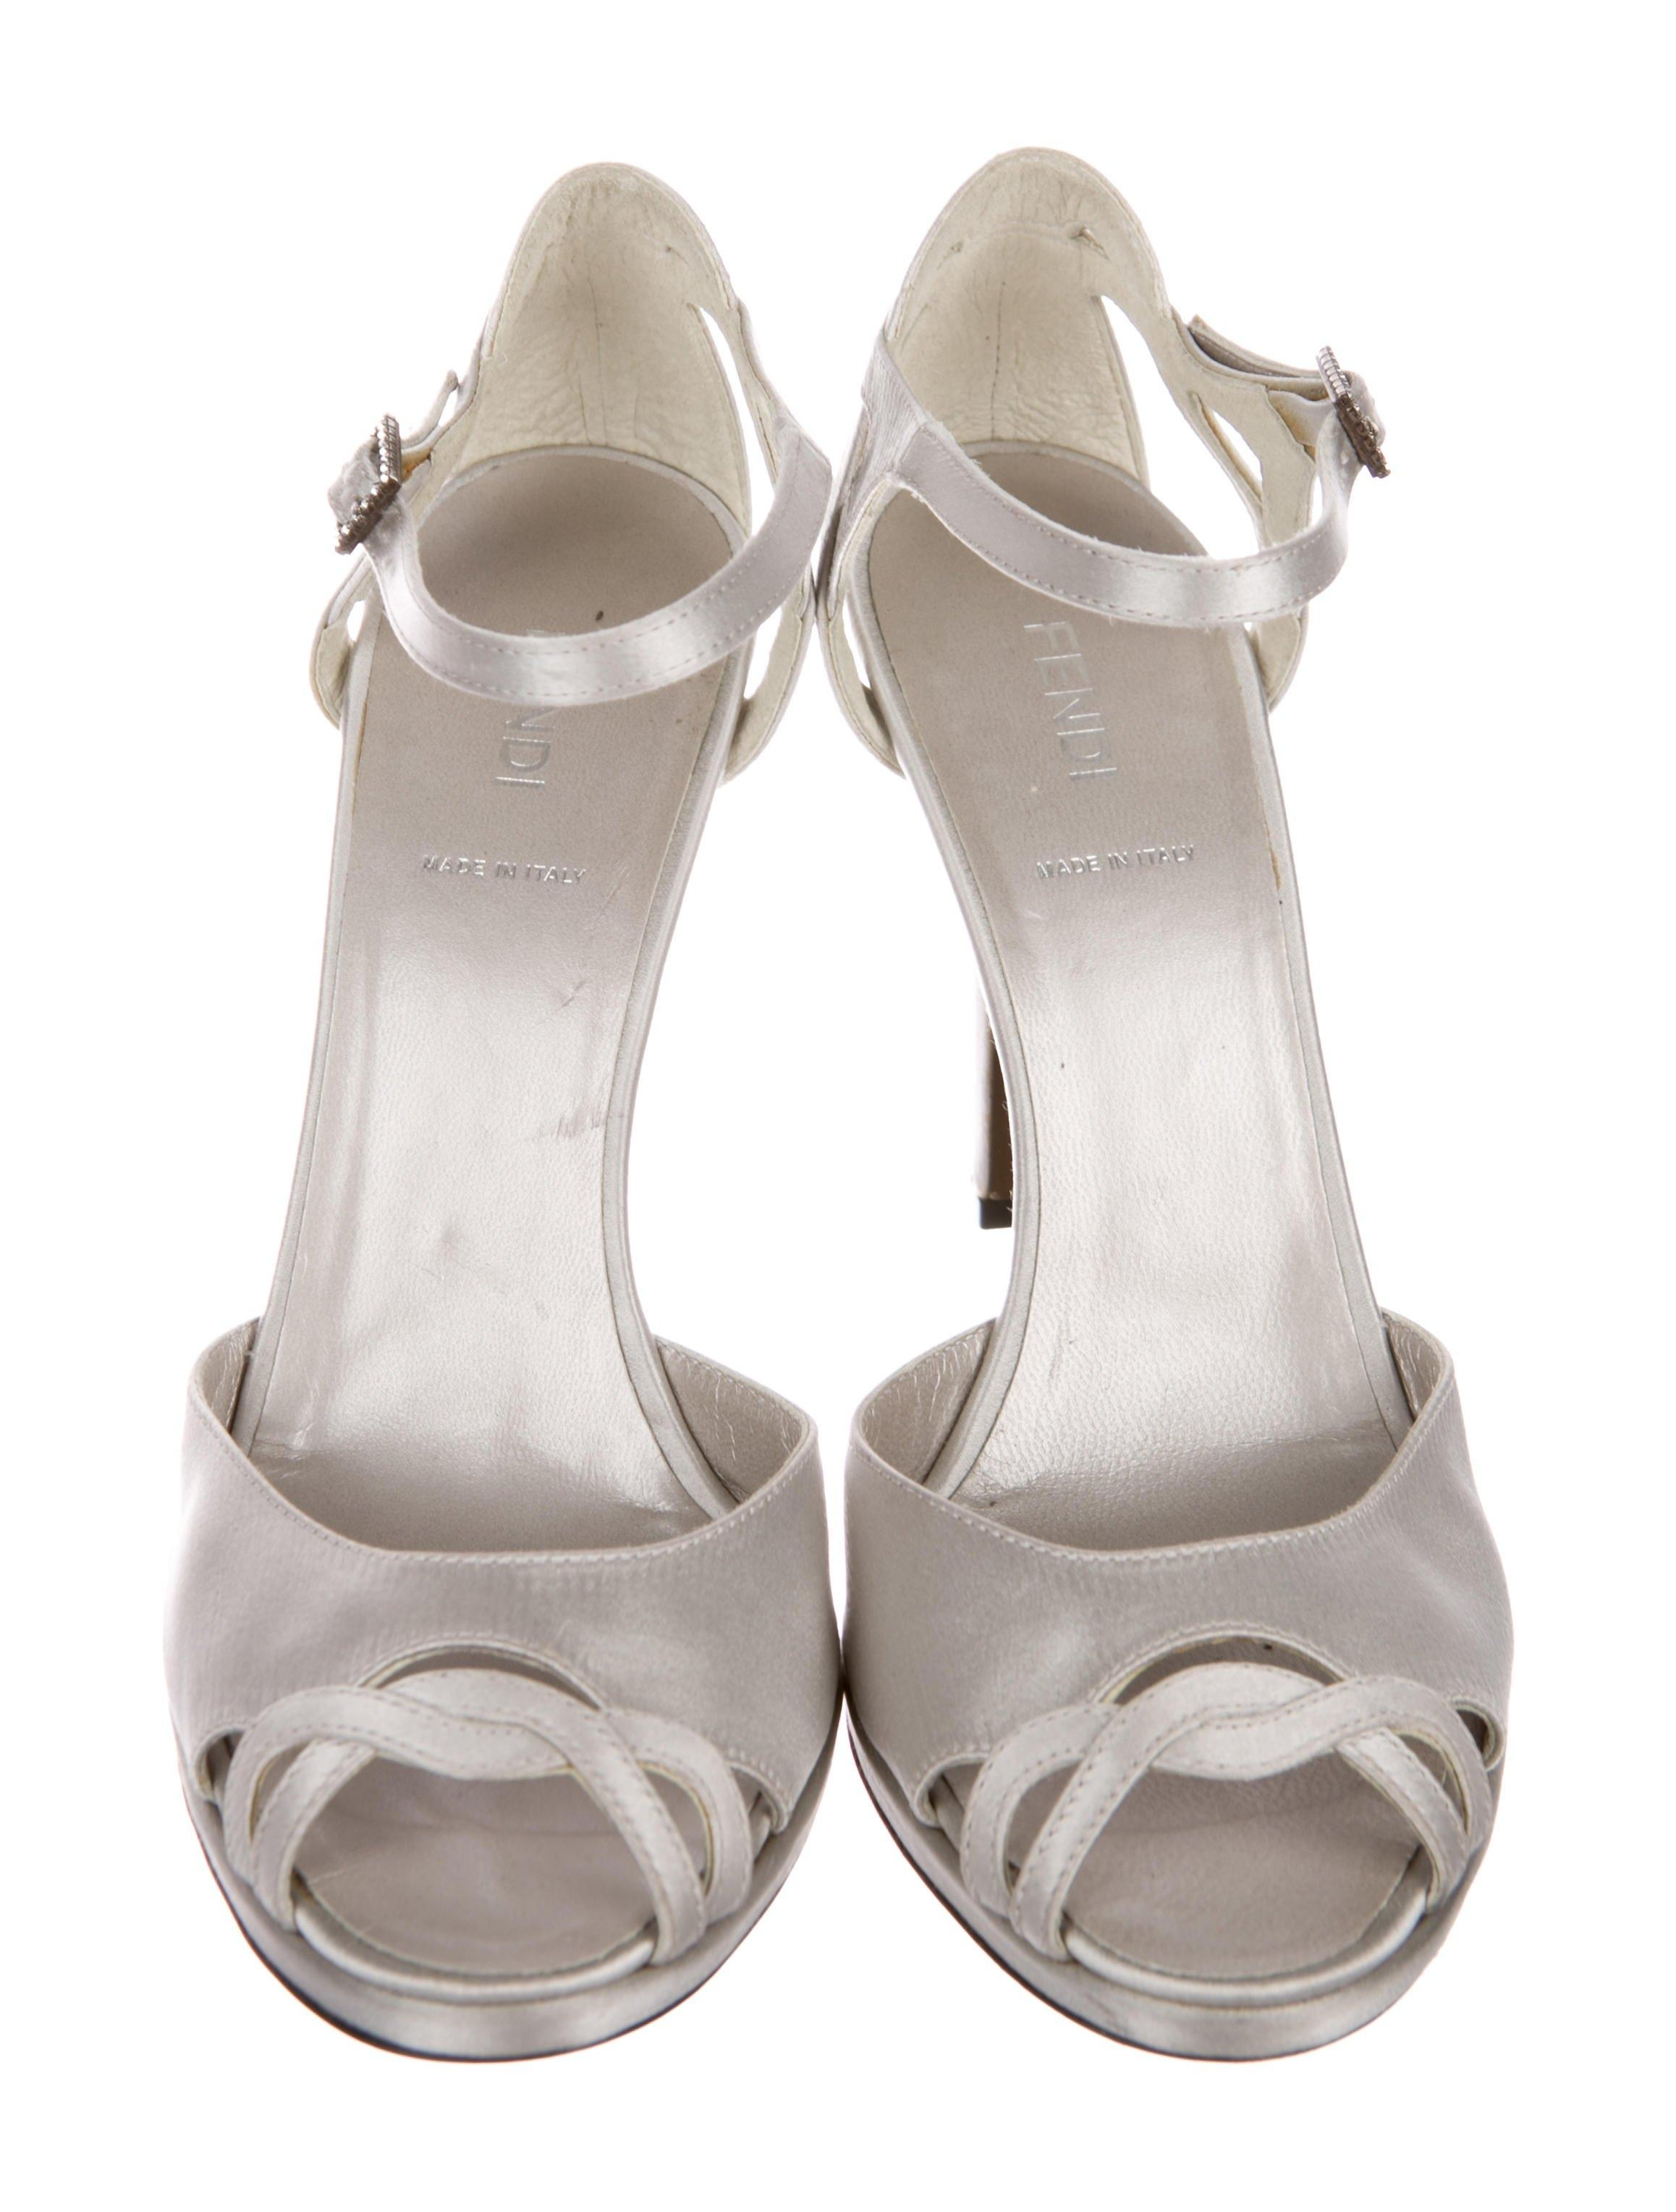 ff2822e3be5 Fendi Silver Satin Satin Satin Peep-toe (Us 8) Sandals Size EU 38.5 ...